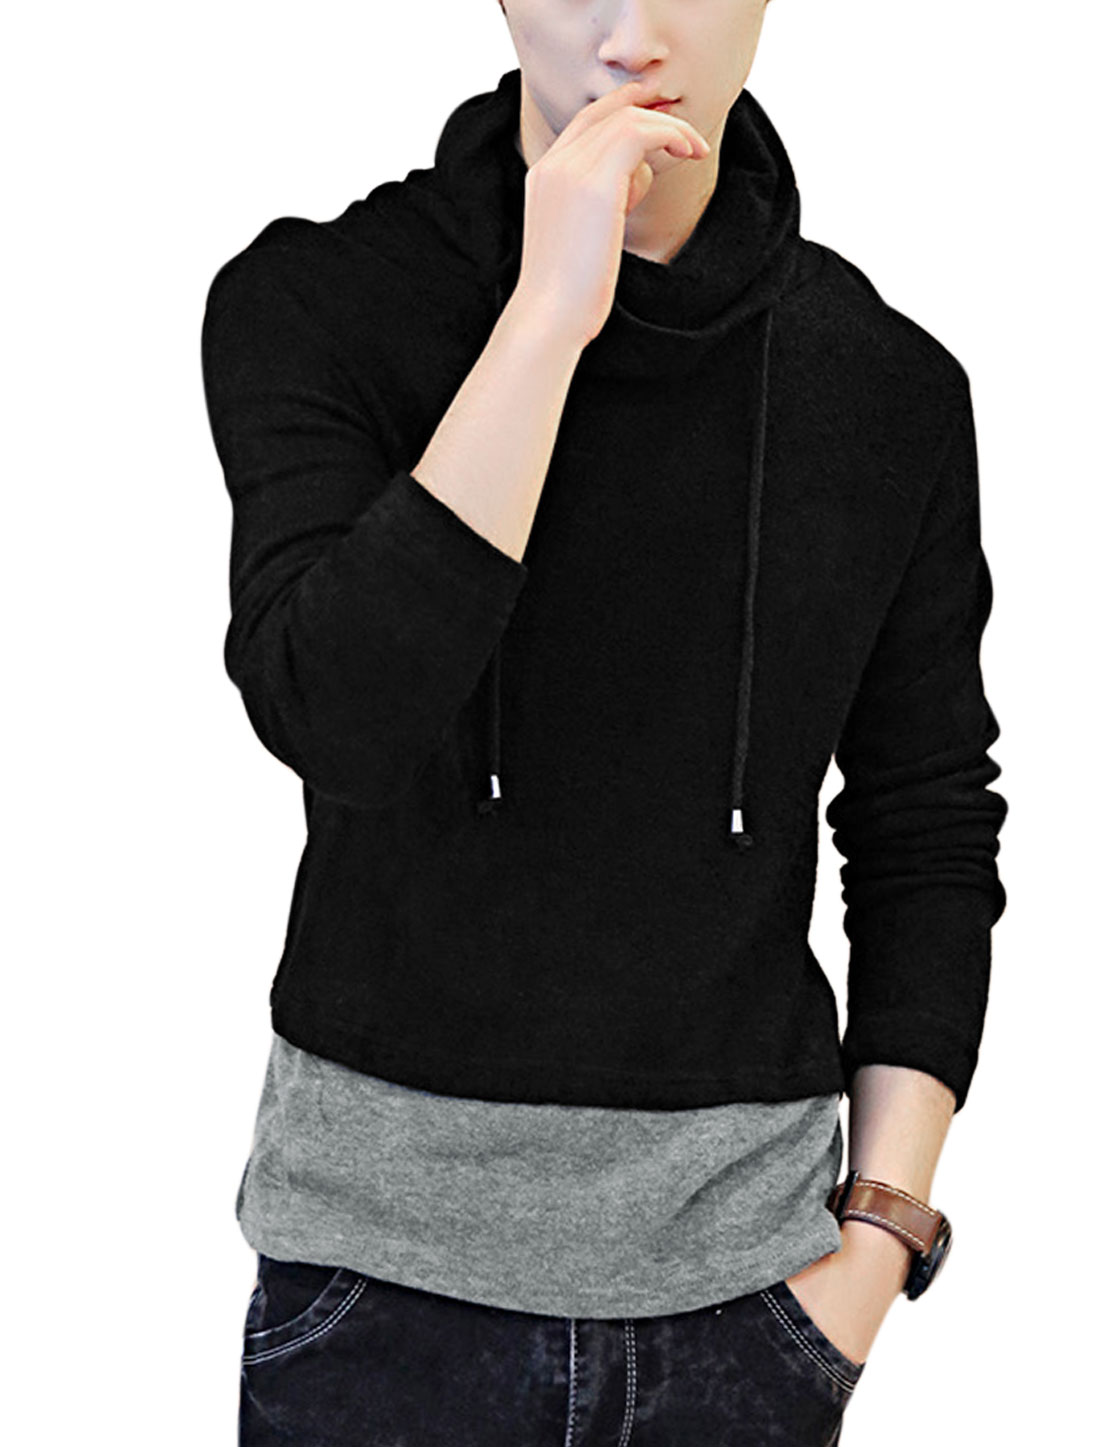 Men Cowl Neck Drawstring Contrast Color Casual Knit Top Black M